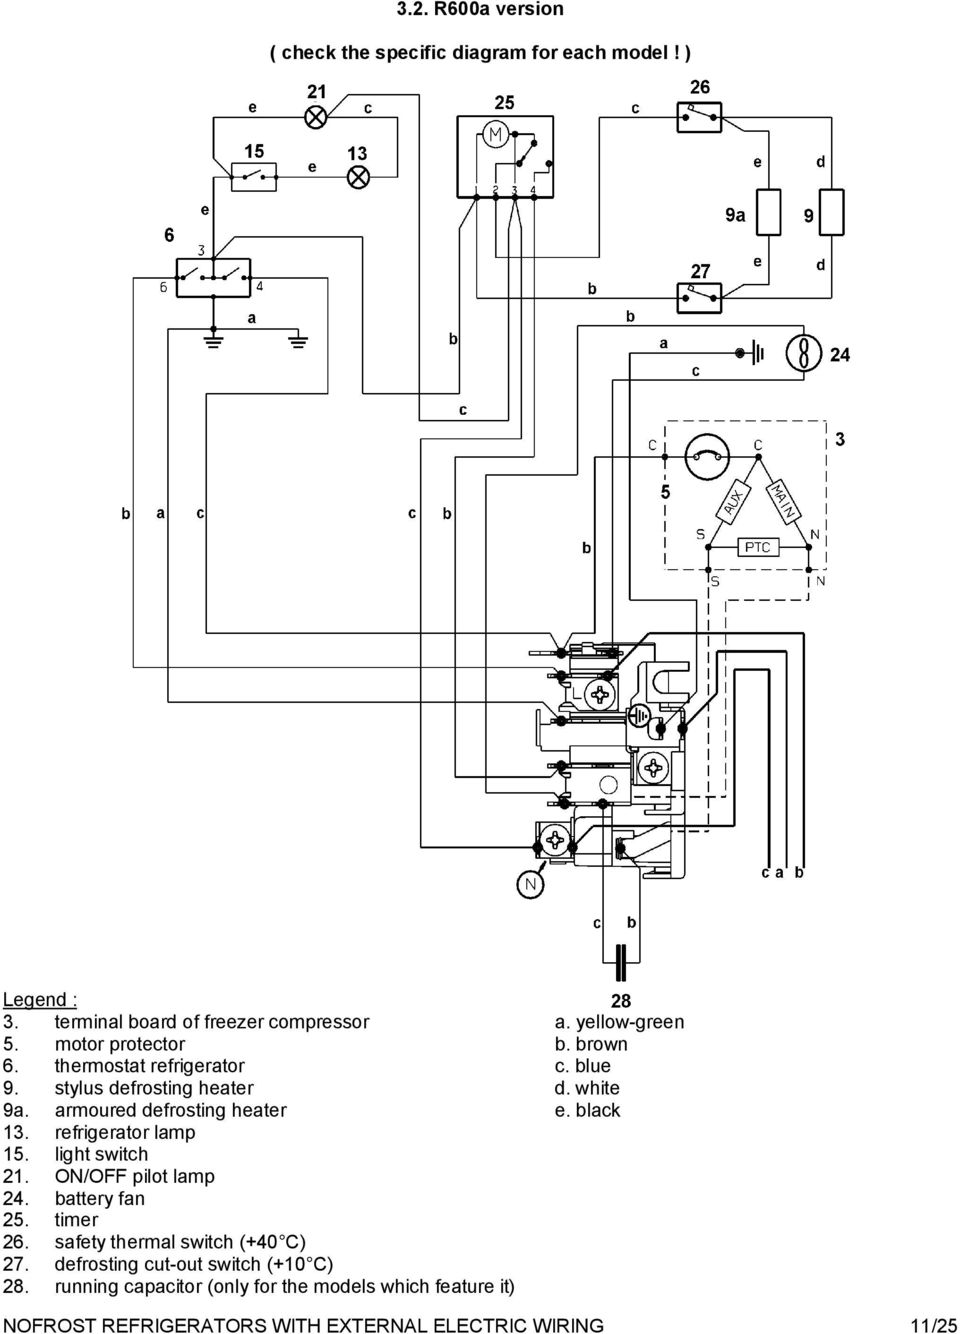 wiring diagram of refrigerator nofrost